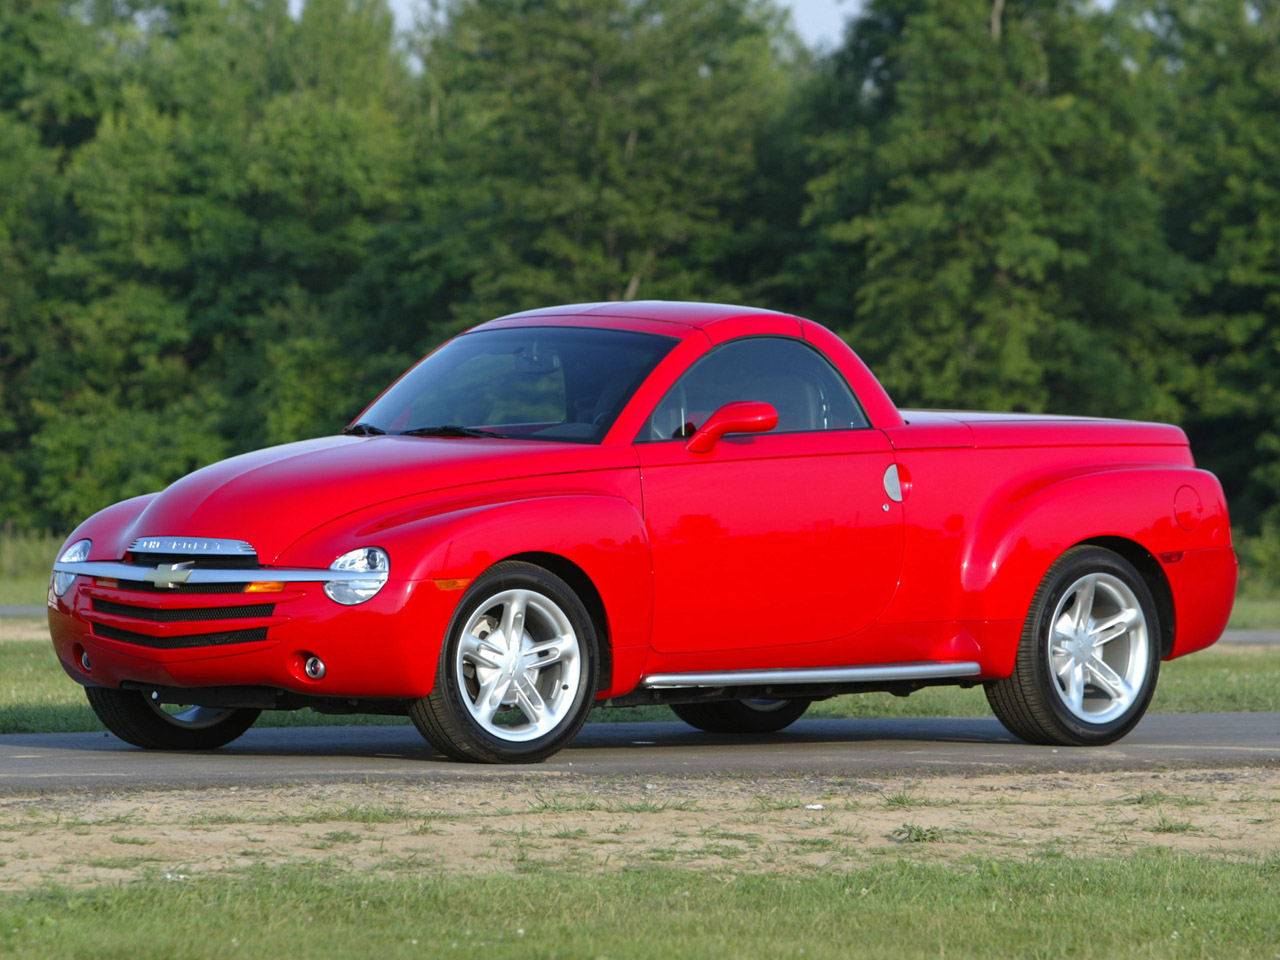 CHEVROLET SSR red